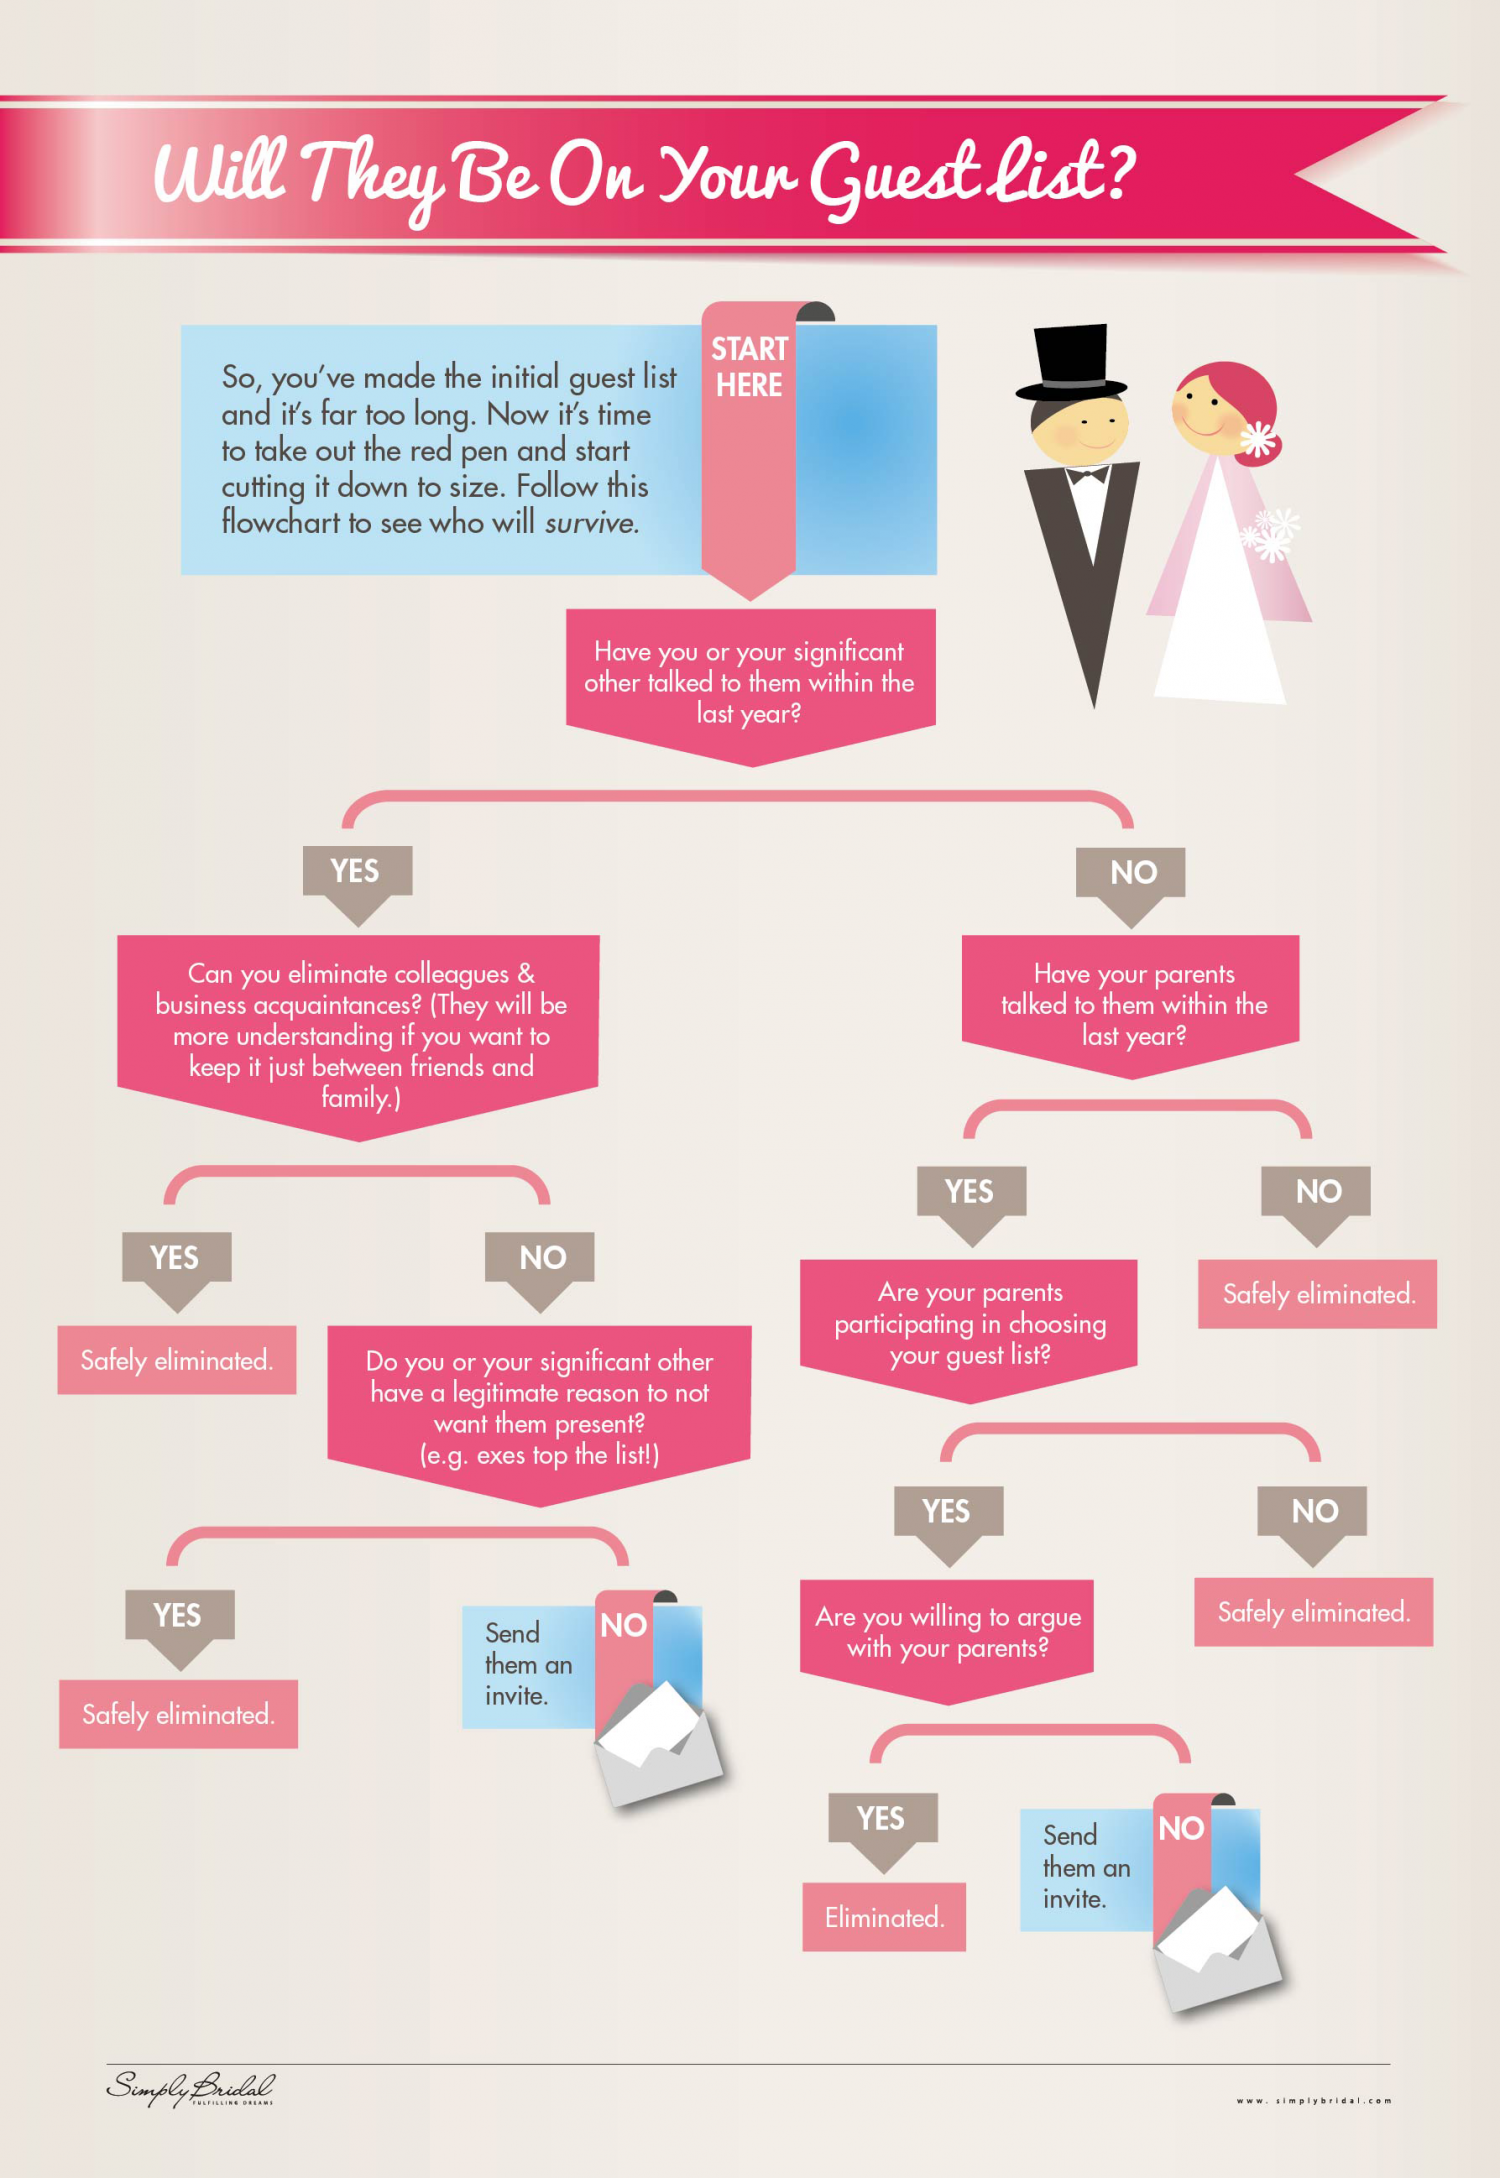 Will They Be On Your Guest List? Infographic